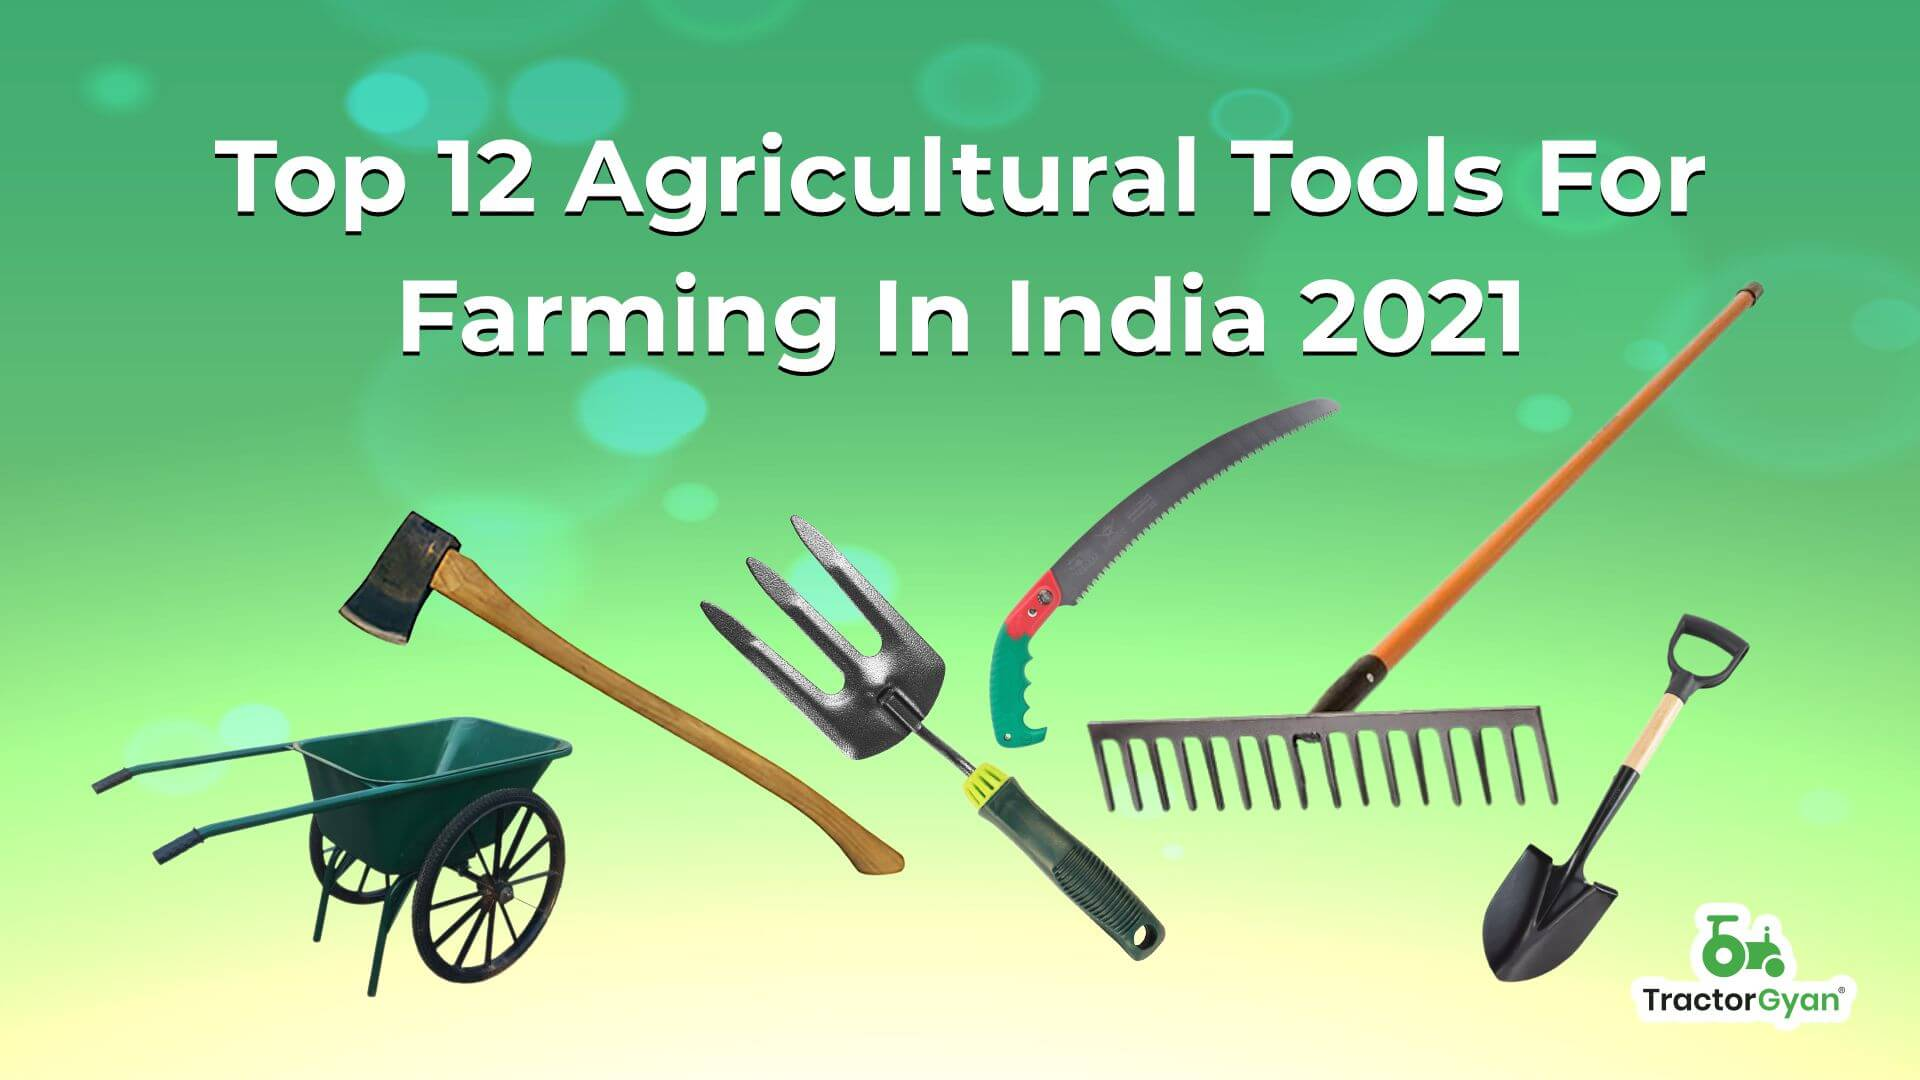 Top 12 Agricultural tools for farming in India 2021